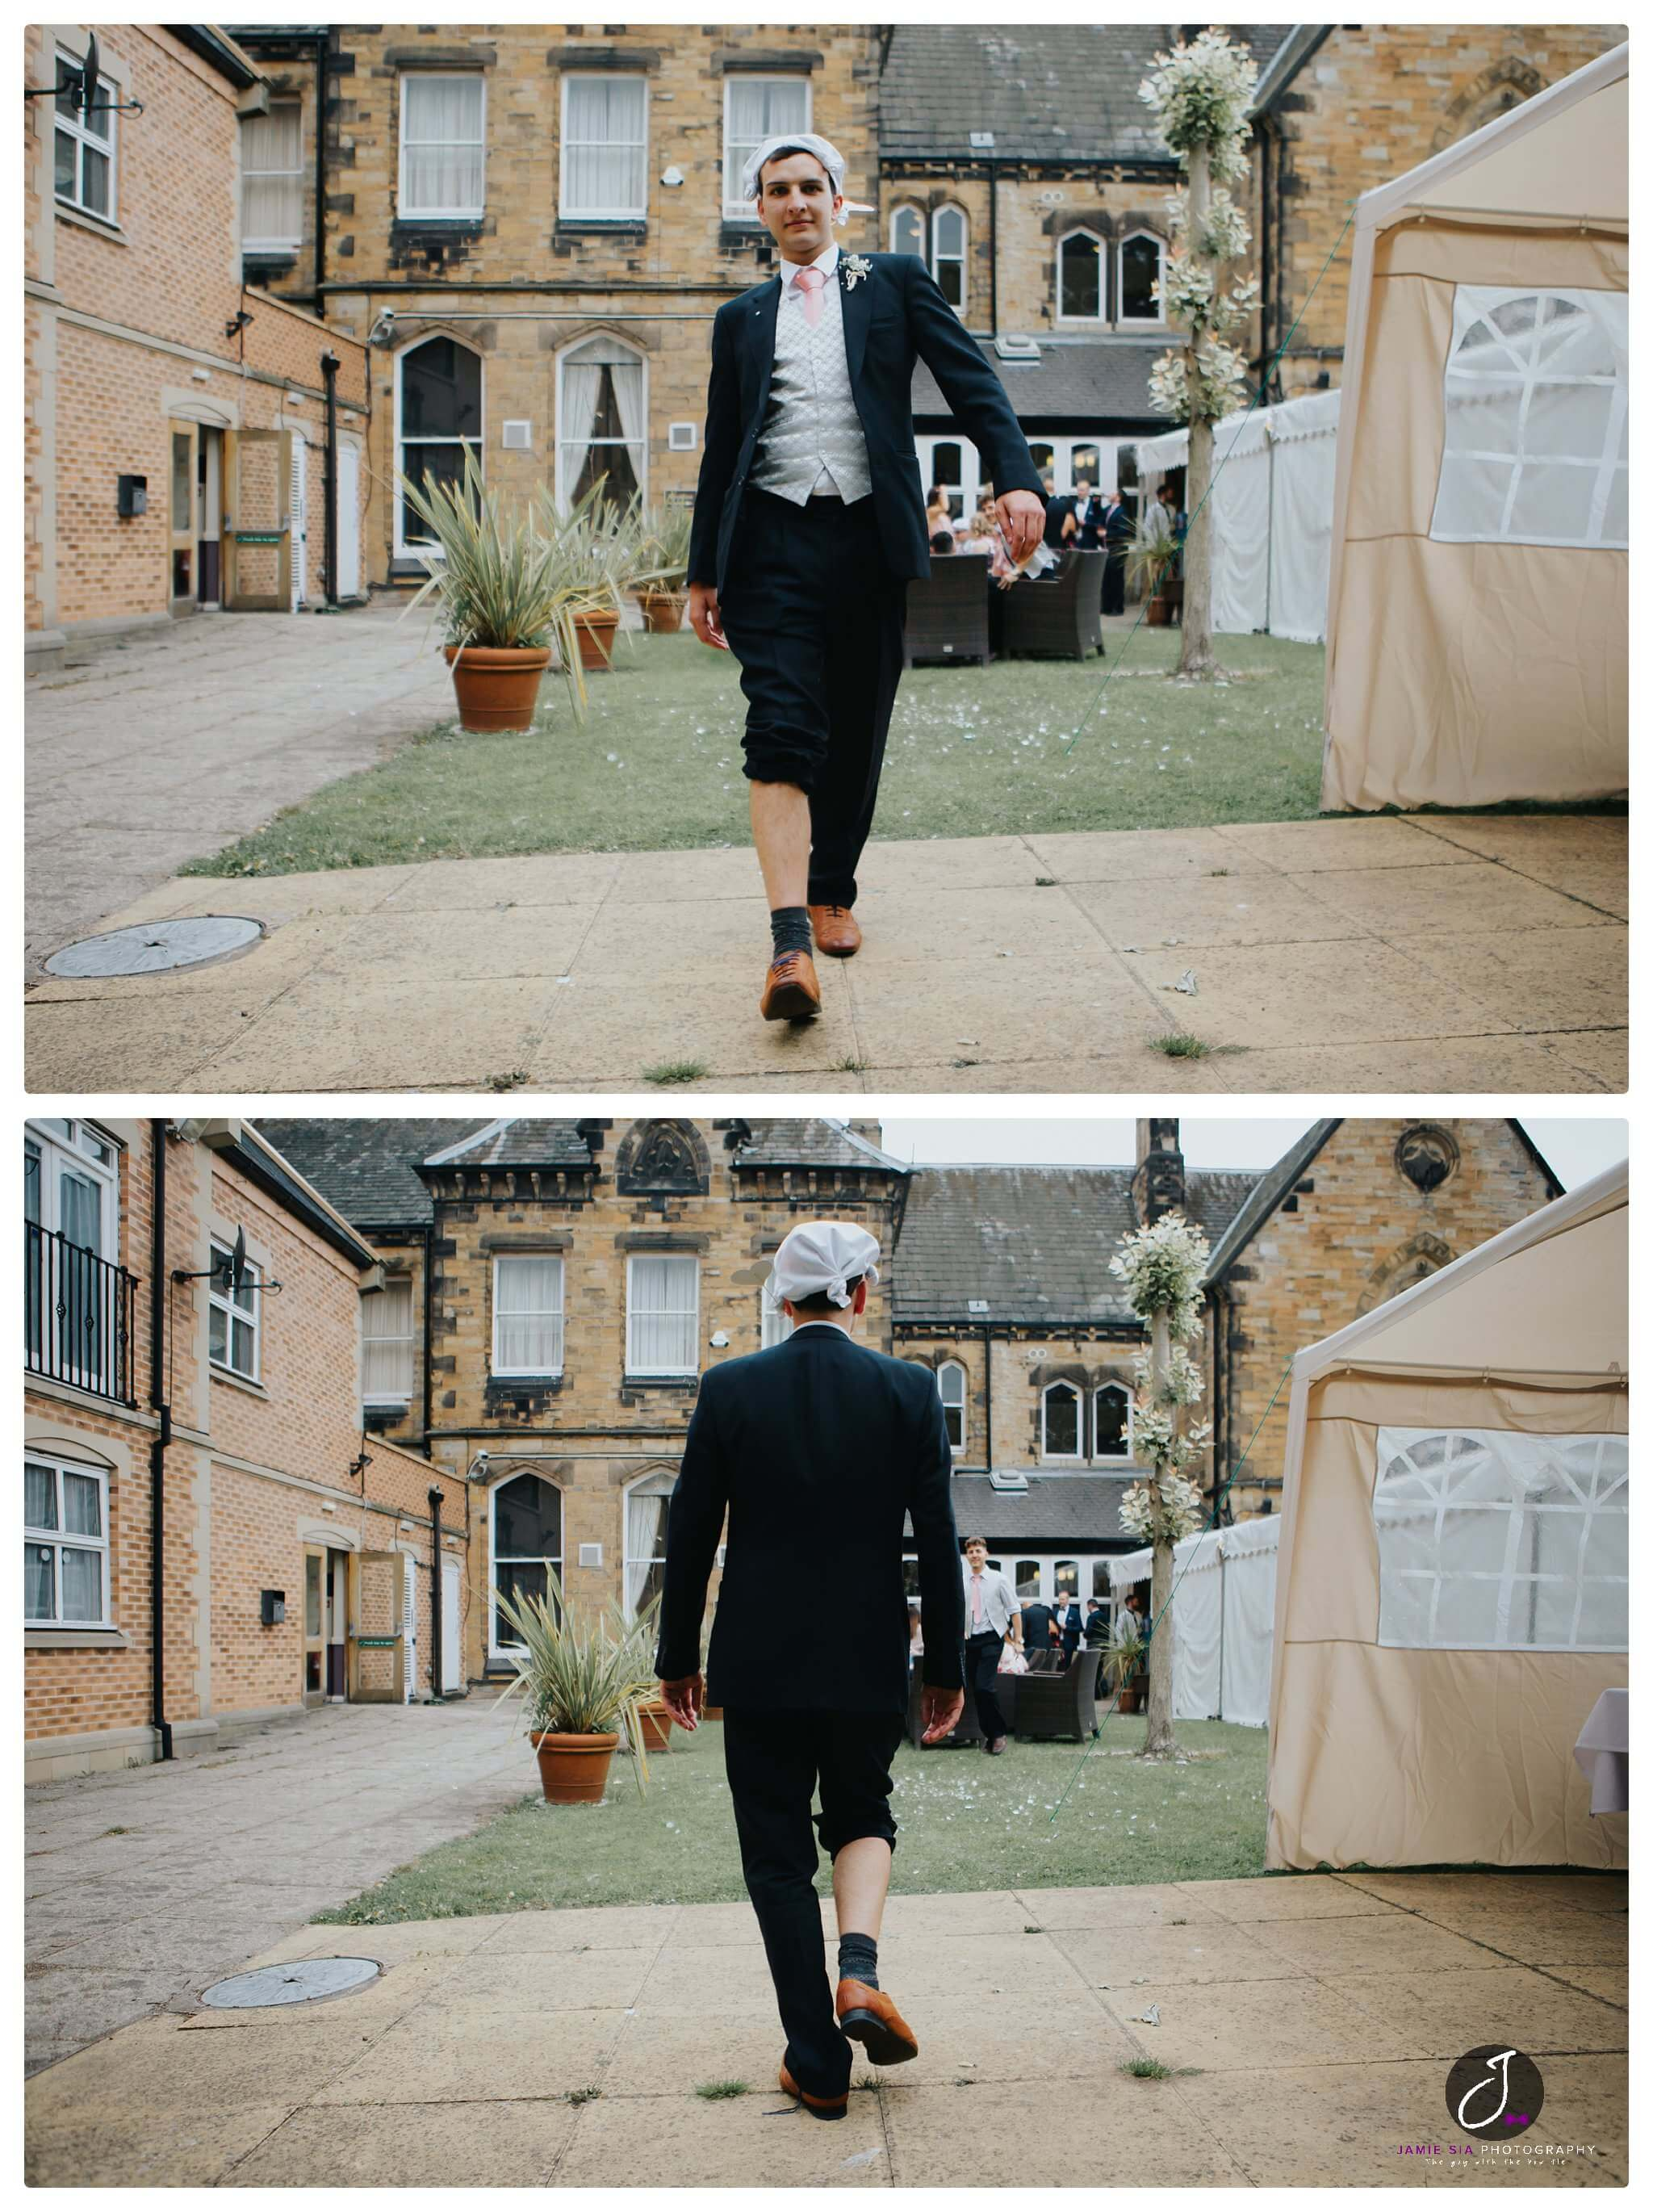 Fun wedding imagery Yorkshire Wedding Photographer Jamie Sia Photography